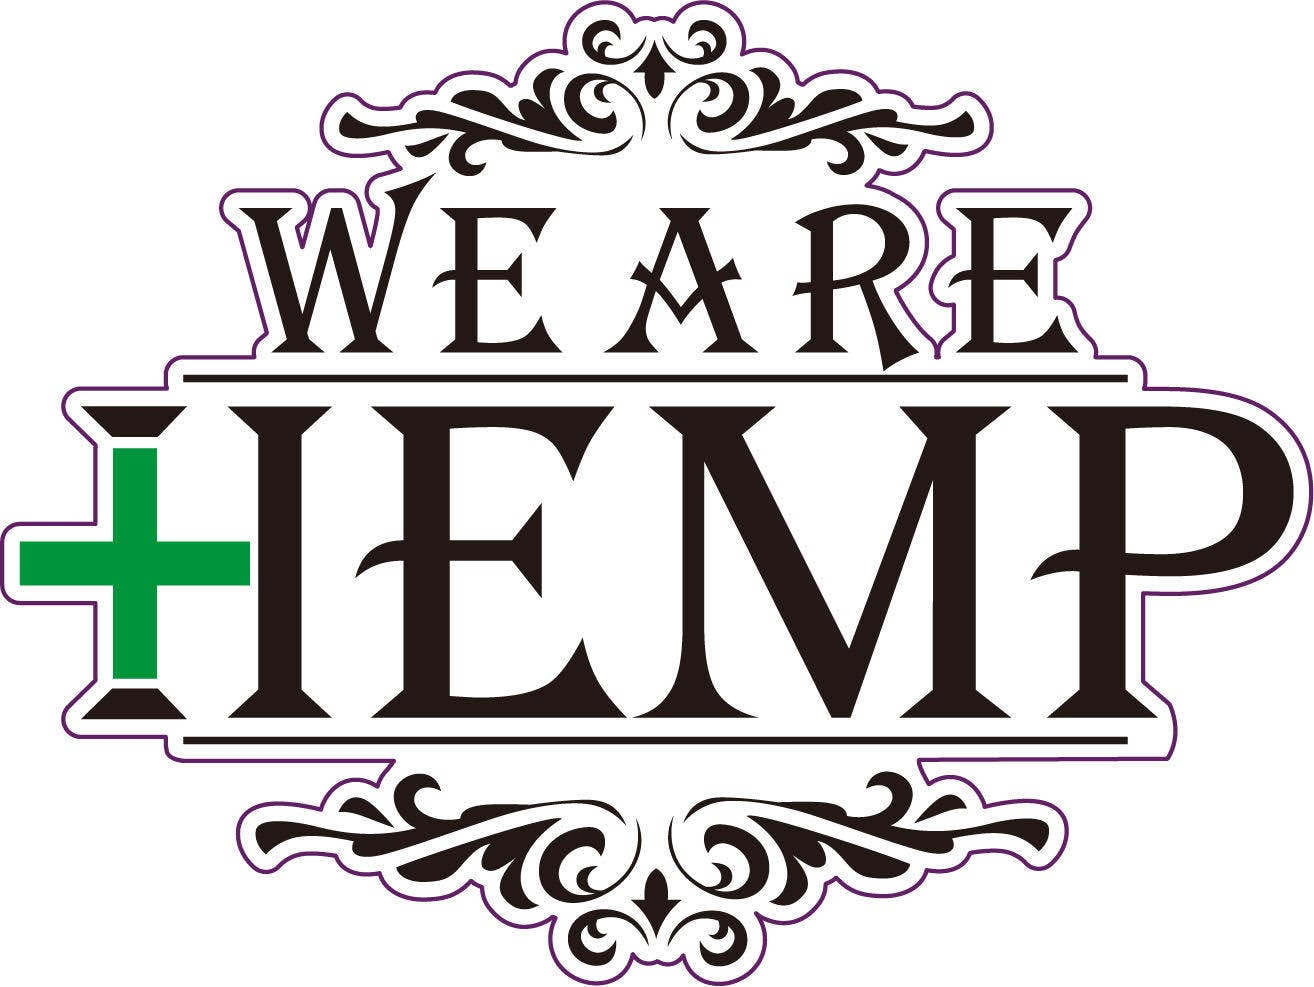 We Are Hemp - Medical Marijuana Doctors - Cannabizme.com